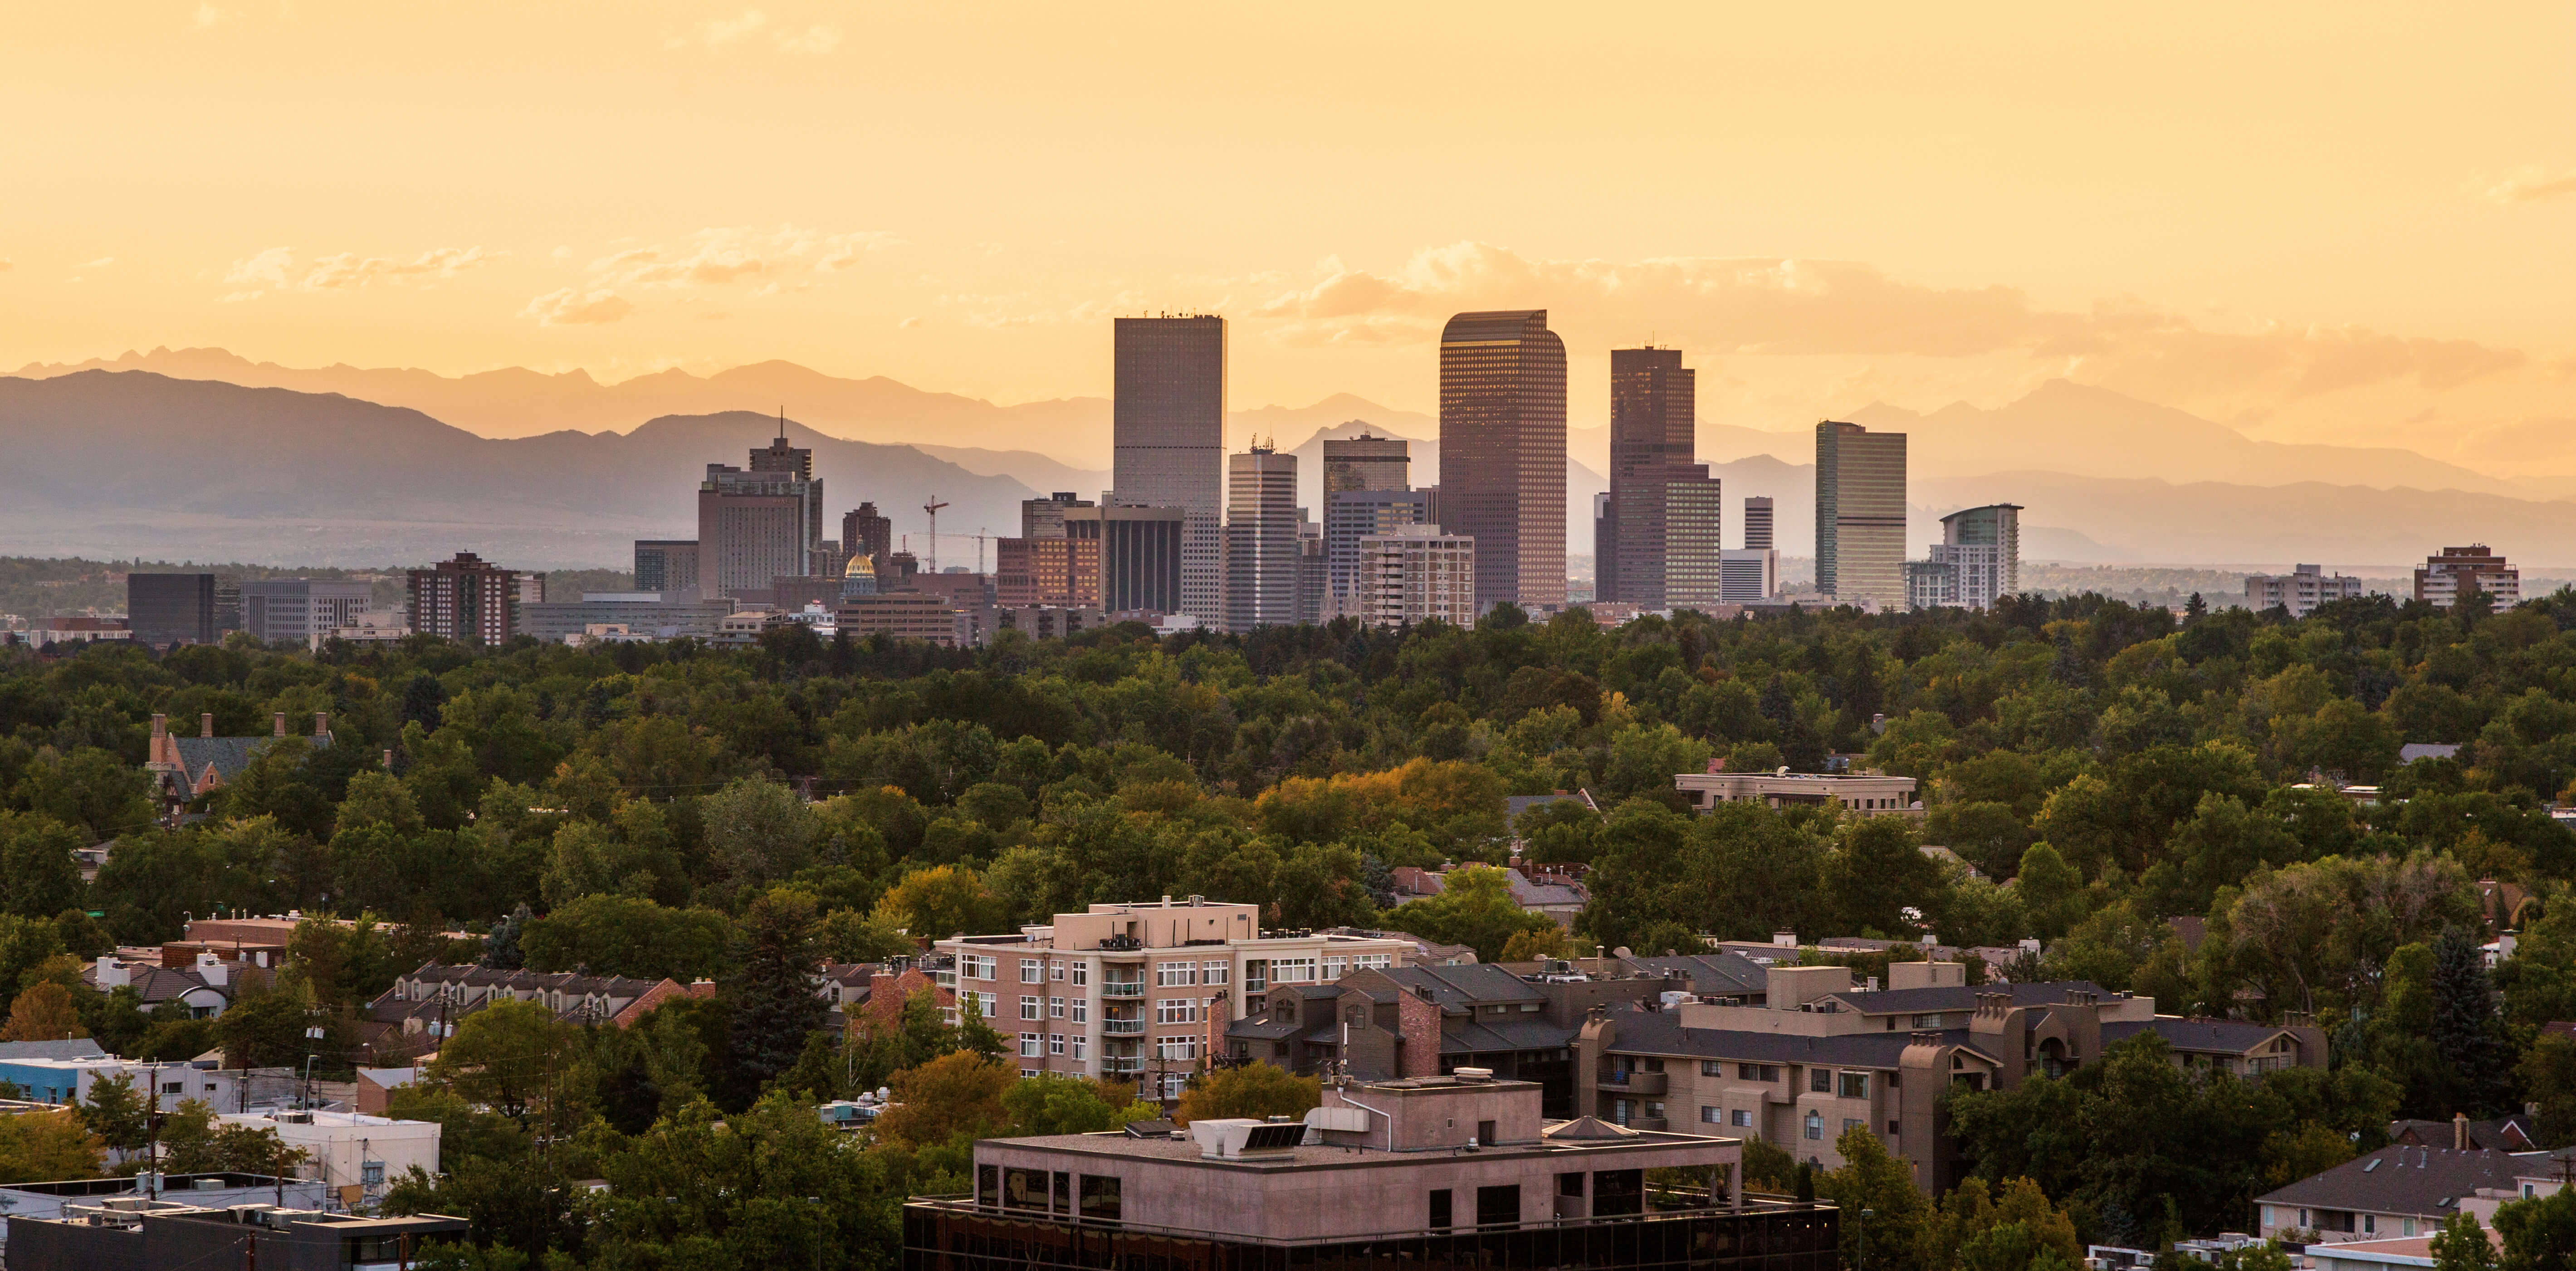 Downtown Denver with the Colorado Rockies behind